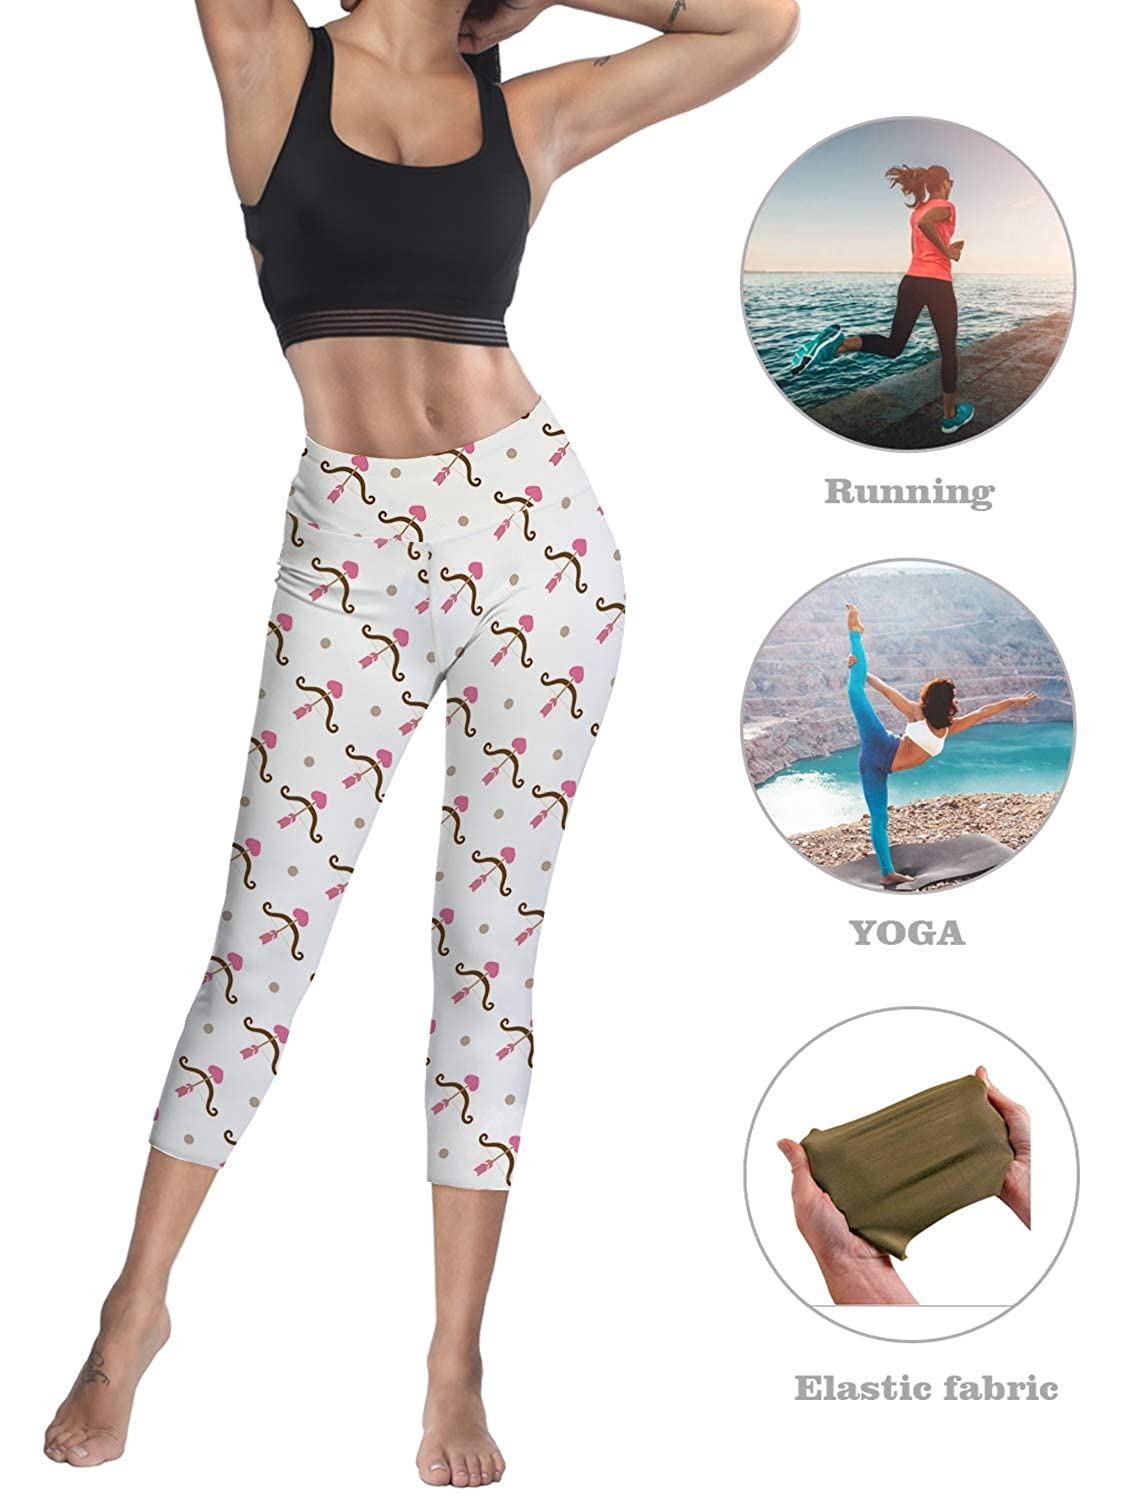 Custom Cupid Lyre Yoga Pants Leggings for Women Stretchy Skinny Pants Cropped Trousers Leggings for Running Sports